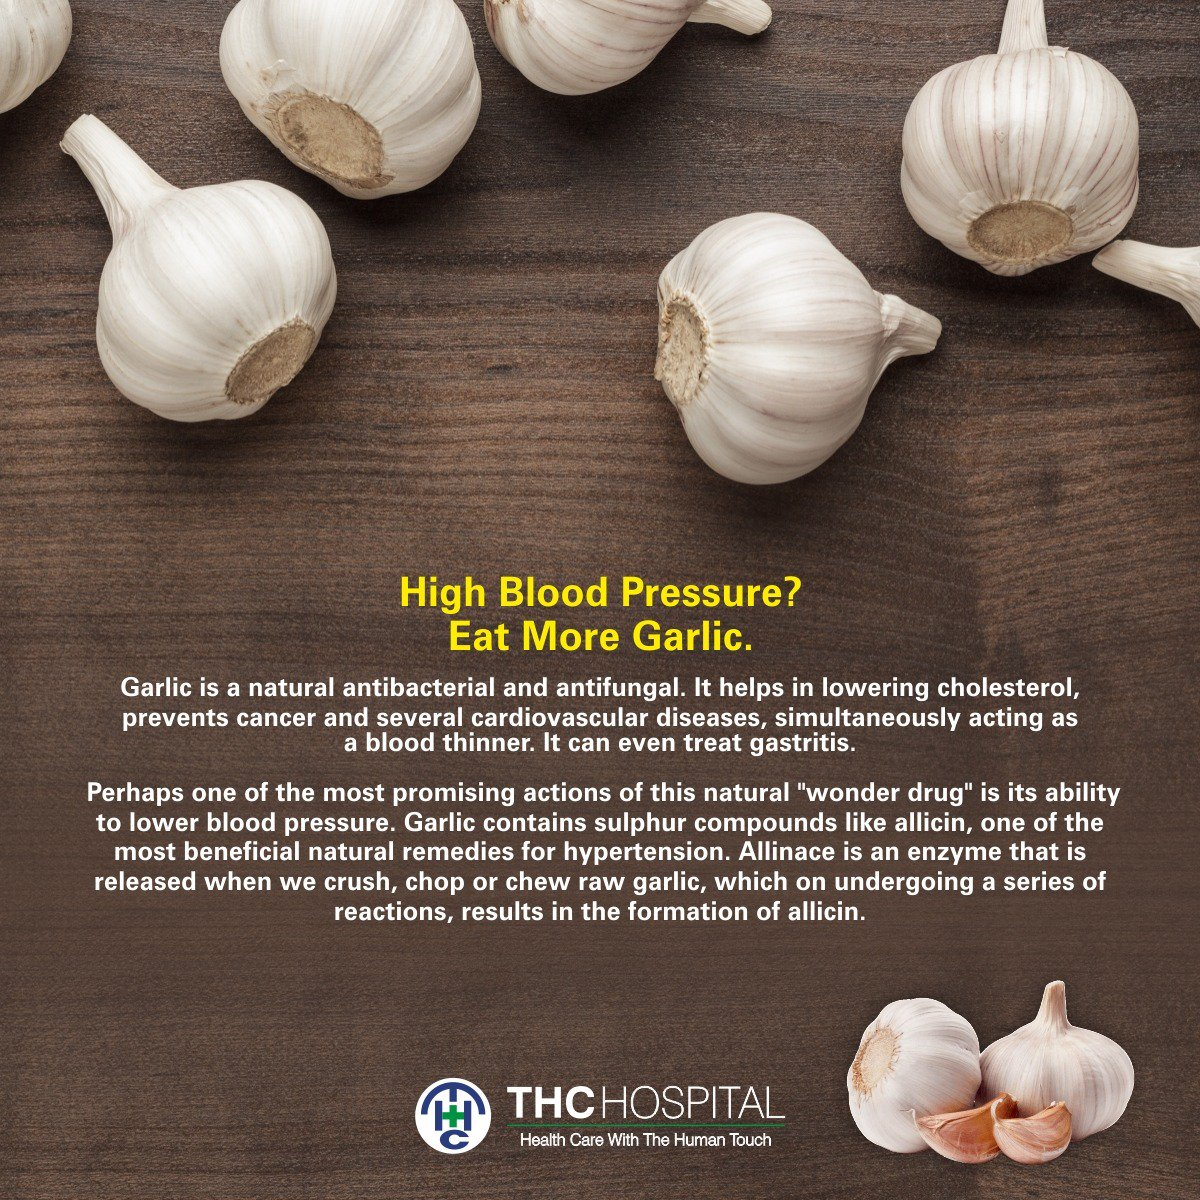 """THCHospital on Twitter: """"Follow @thchospital for more on #health and  #wellbeing. Tag someone who'll like this! #THCcares https://t.co/sZ9yUNPQ6Q  #thanehealthcare #HighBloodPressure #Eat #Garlic #natural #antibacterial  #antifungal #cholesterol #cancer ..."""